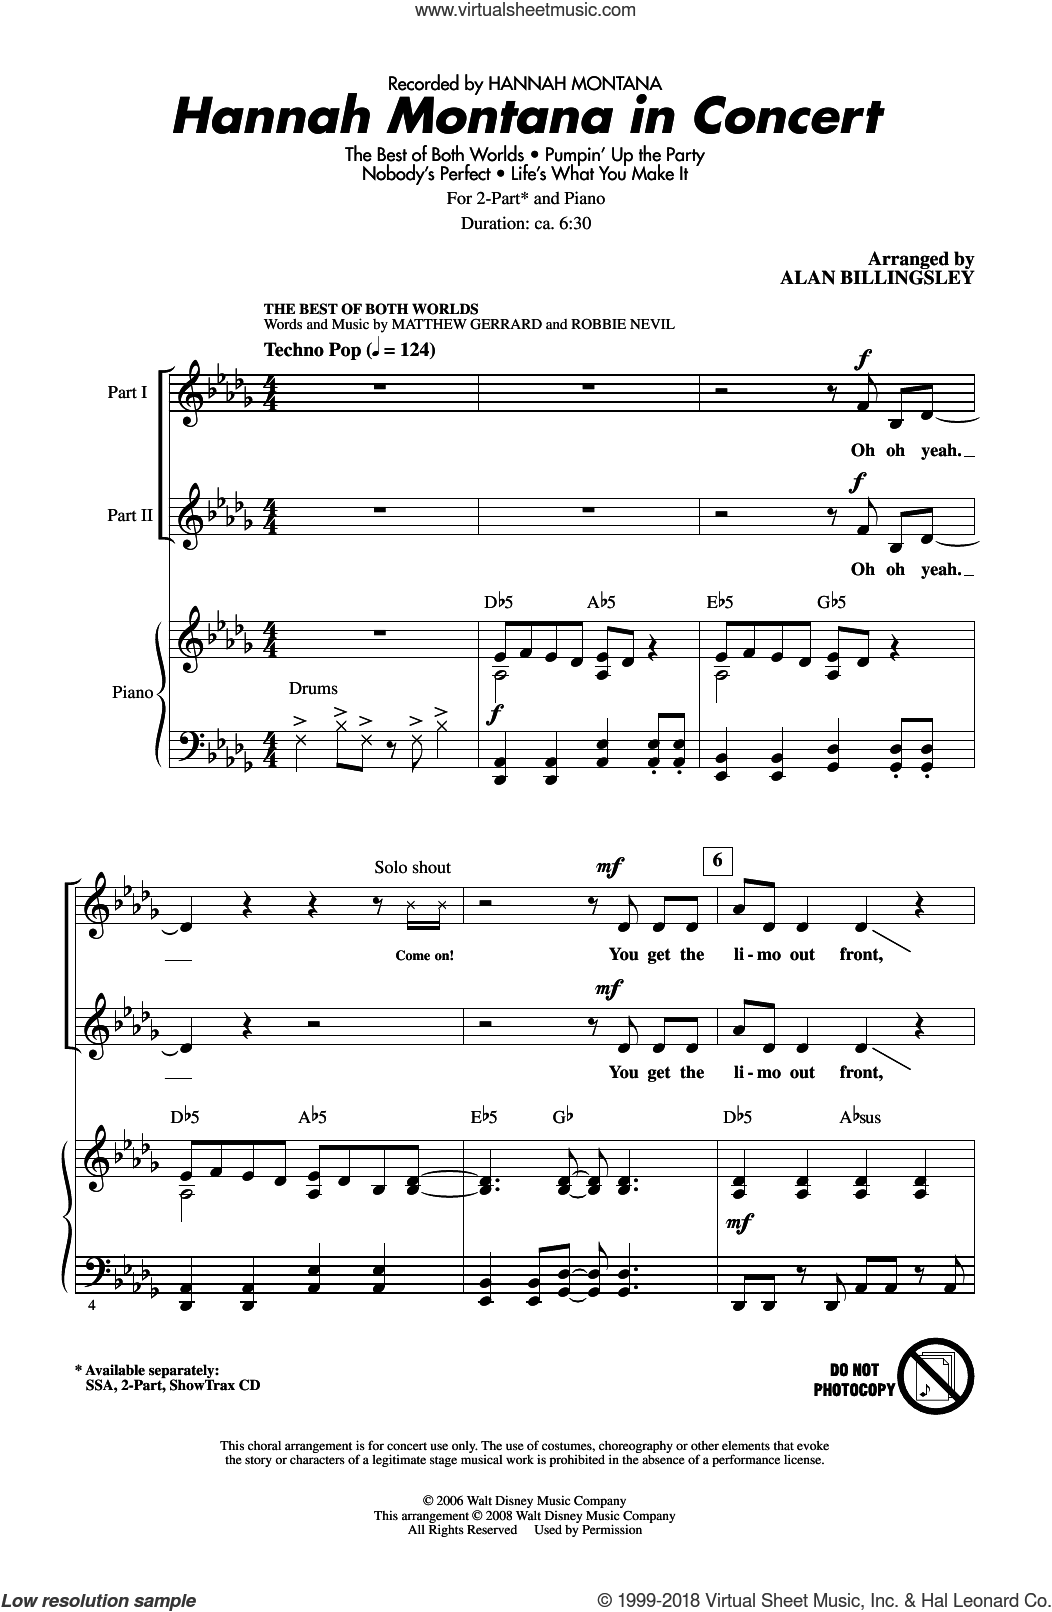 Hannah Montana In Concert sheet music for choir (2-Part) by Matthew Gerrard, Alan Billingsley, Hannah Montana and Robbie Nevil, intermediate duet